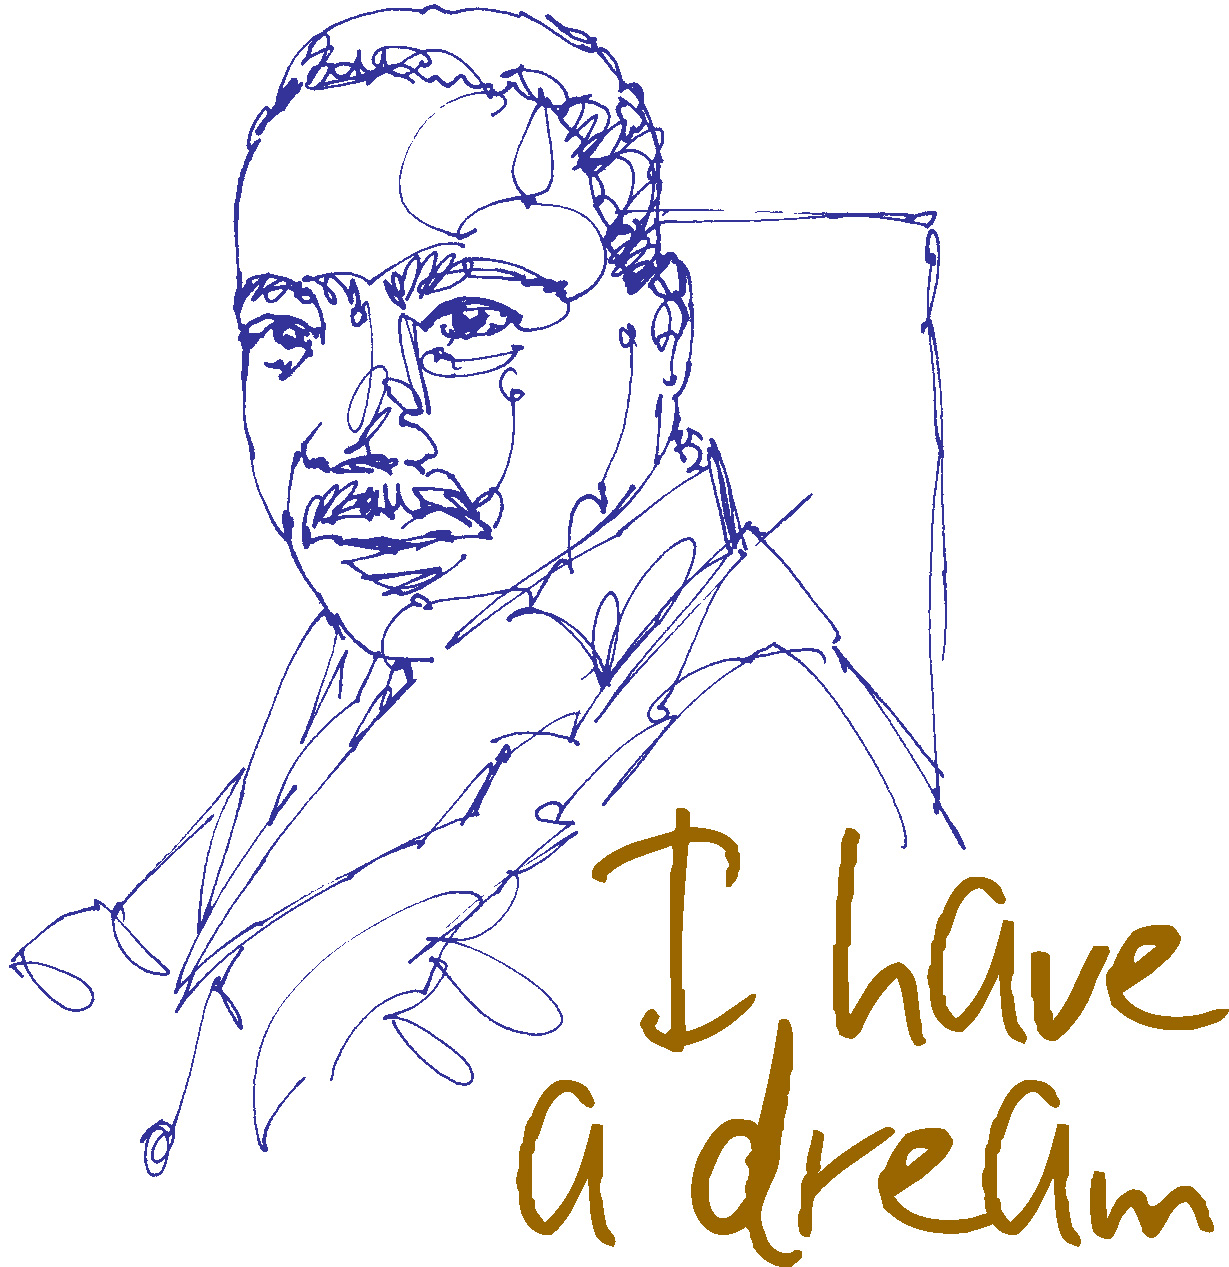 Mlk holiday clipart png freeuse Free MLK Holiday Cliparts, Download Free Clip Art, Free Clip ... png freeuse